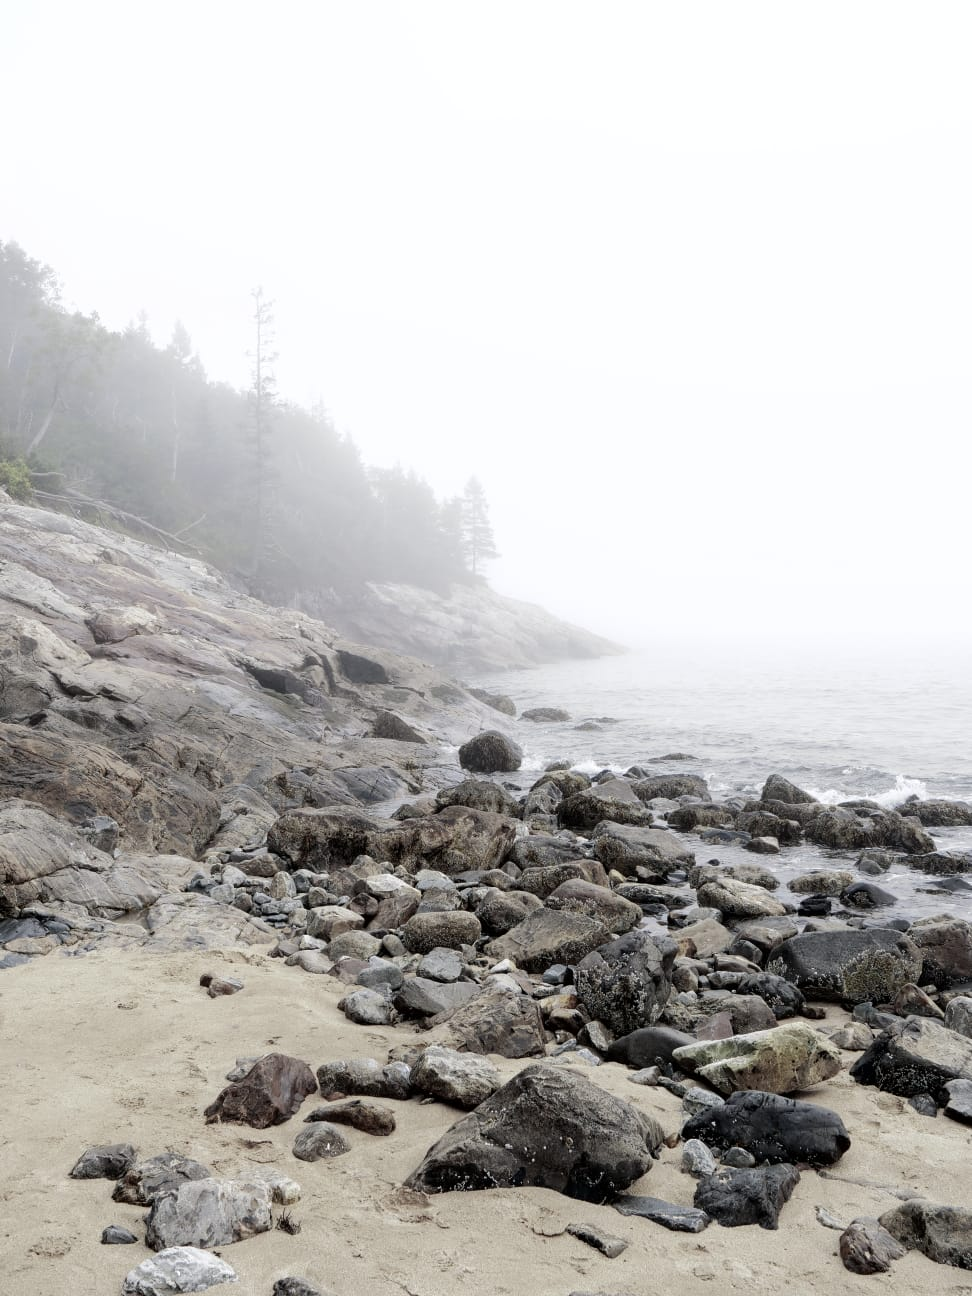 Sand Beach, Maine. Photo by: Sarah Funk